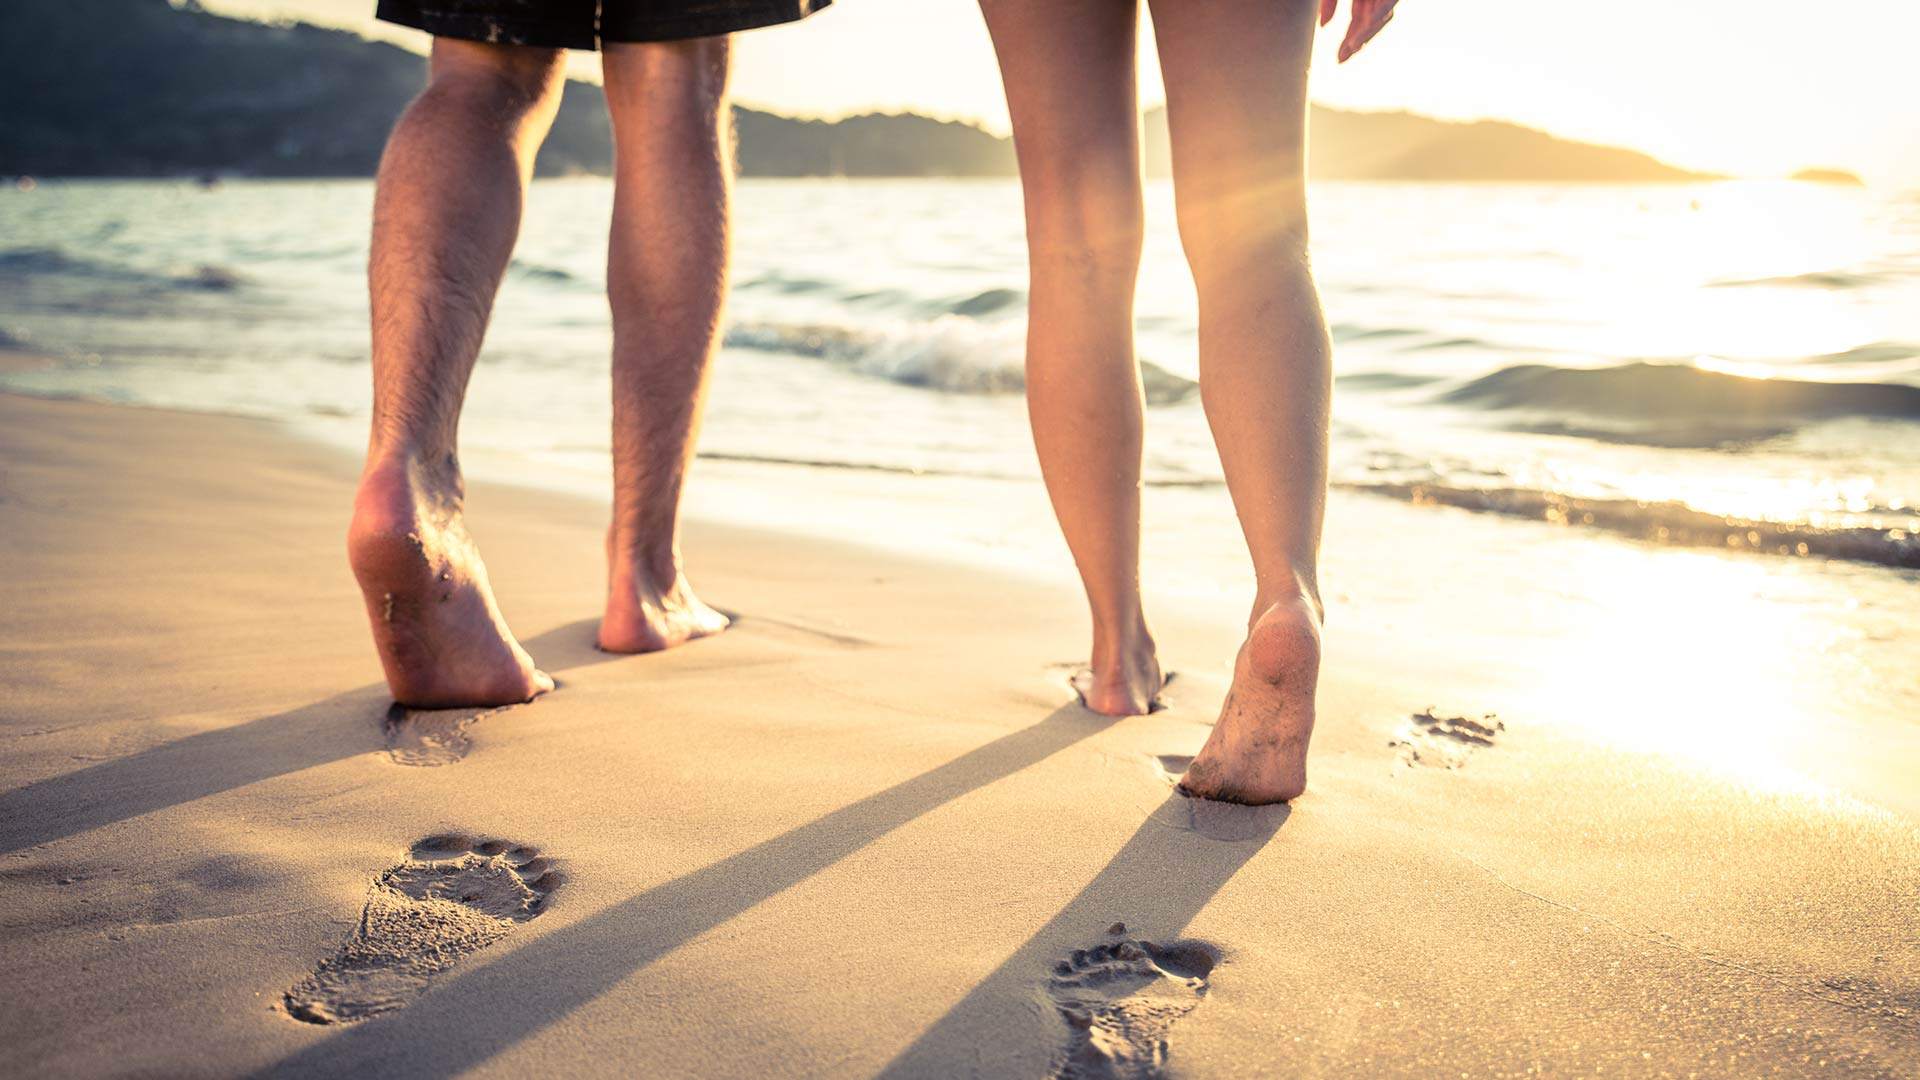 The feet of 2 people walking along the shore leave footprints in the sand.